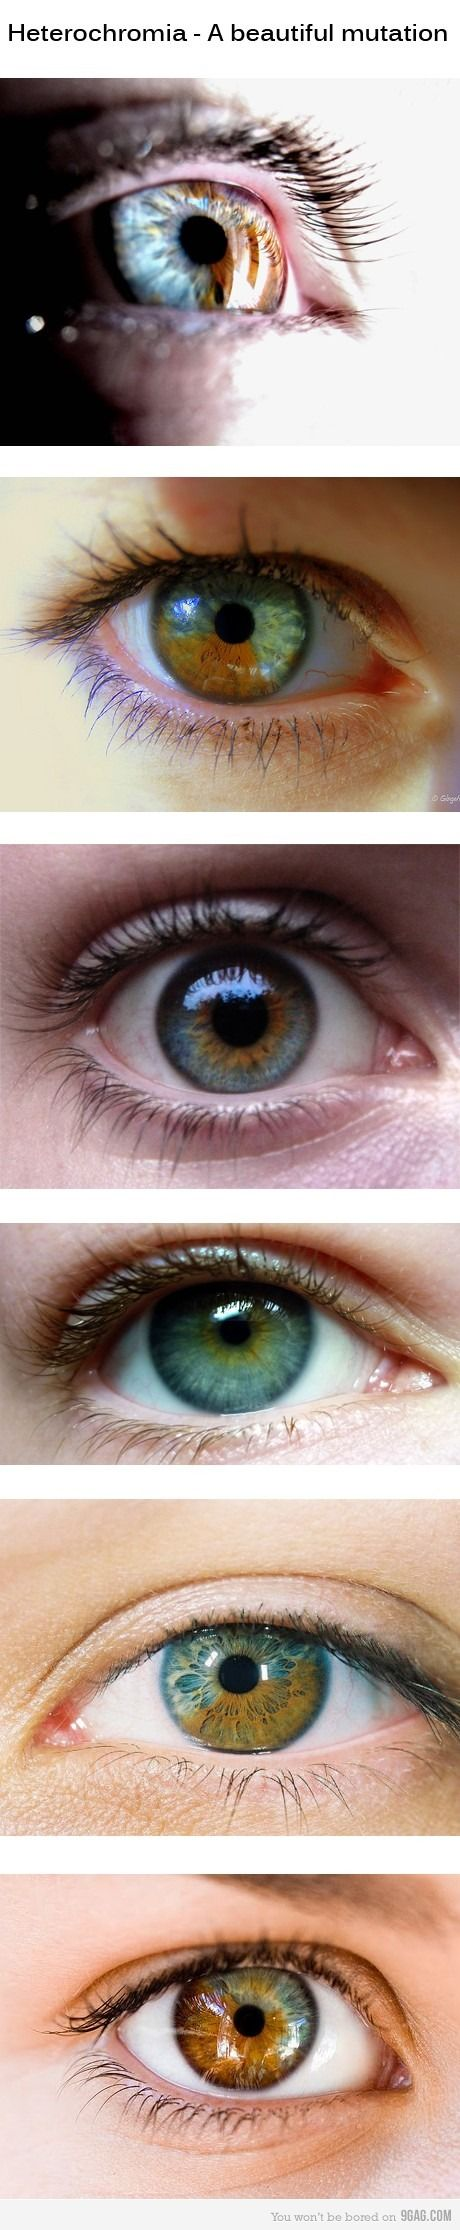 Christopher is a mutant. His eyes are both green and brown. Not hazel, they're actually two different colors